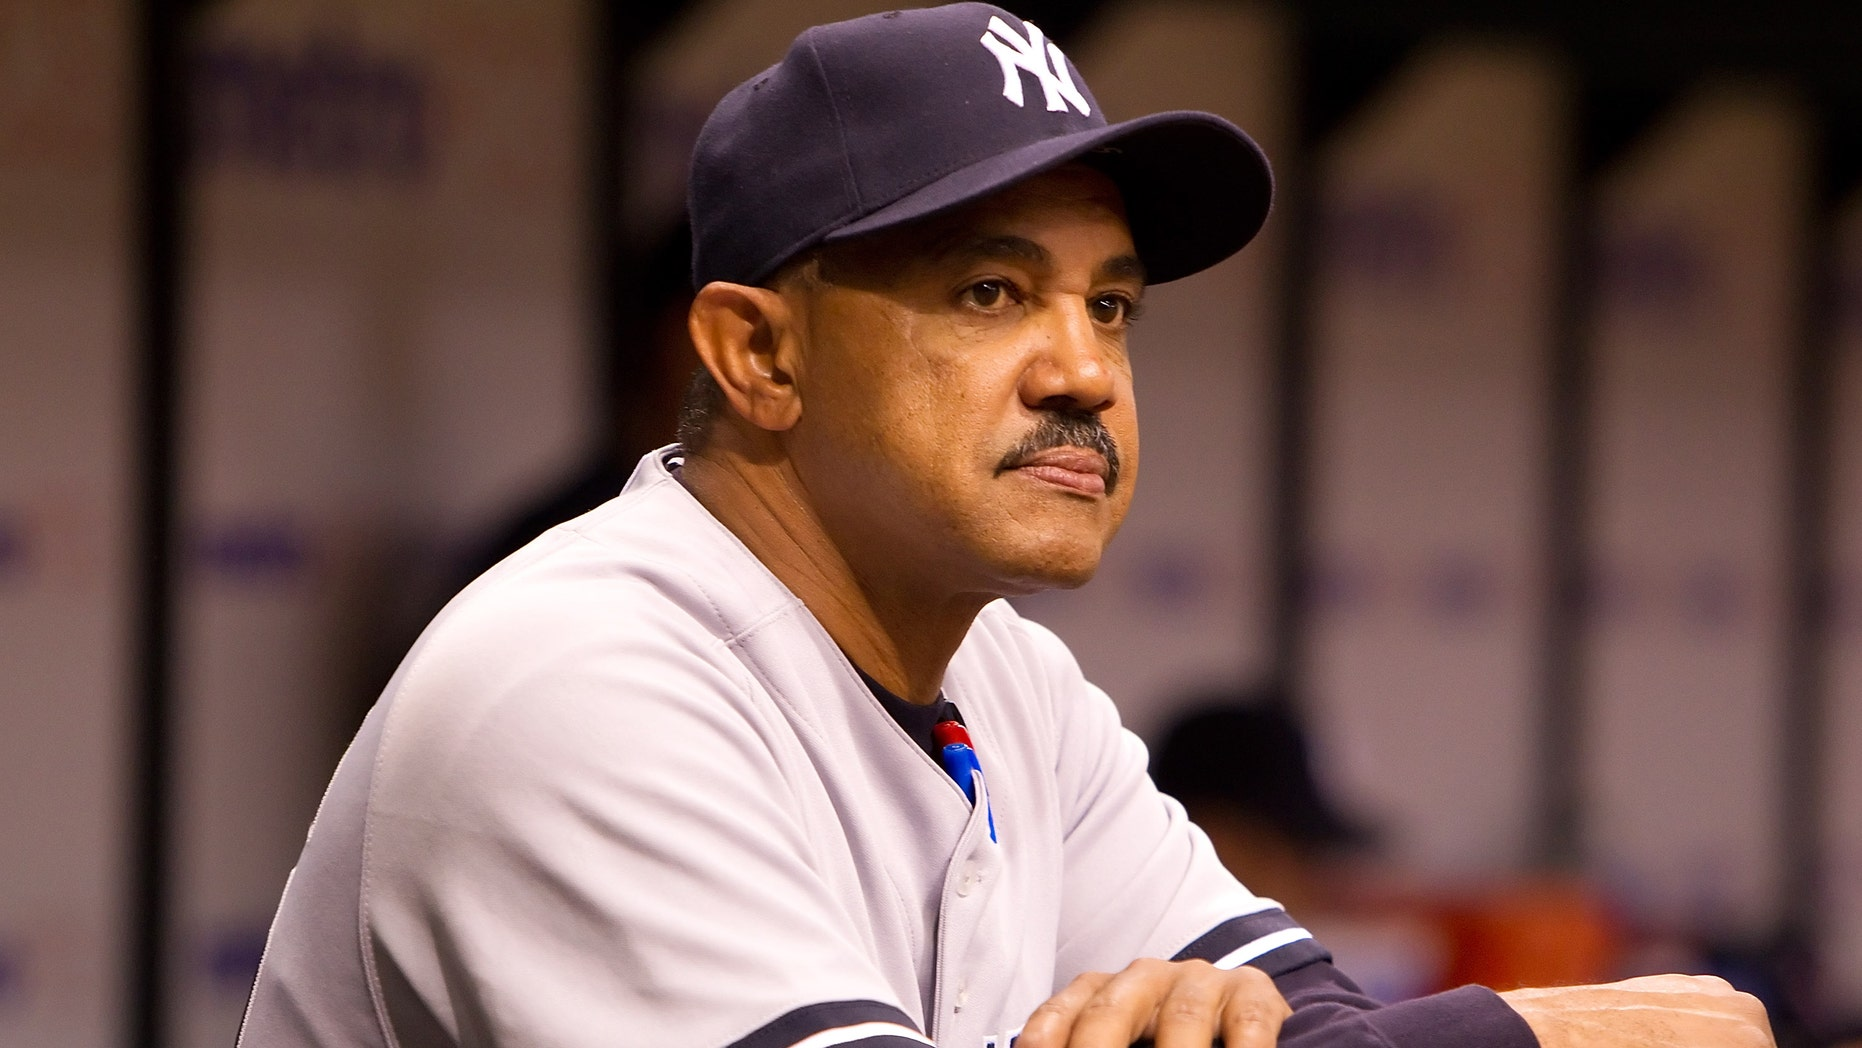 ST PETERSBURG, FL - APRIL 09:  Bench Coach Tony Pena #56 of the New York Yankees watches his team from the dugout against the Tampa Bay Rays during the game at Tropicana Field on April 9, 2010 in St. Petersburg, Florida.  (Photo by J. Meric/Getty Images)